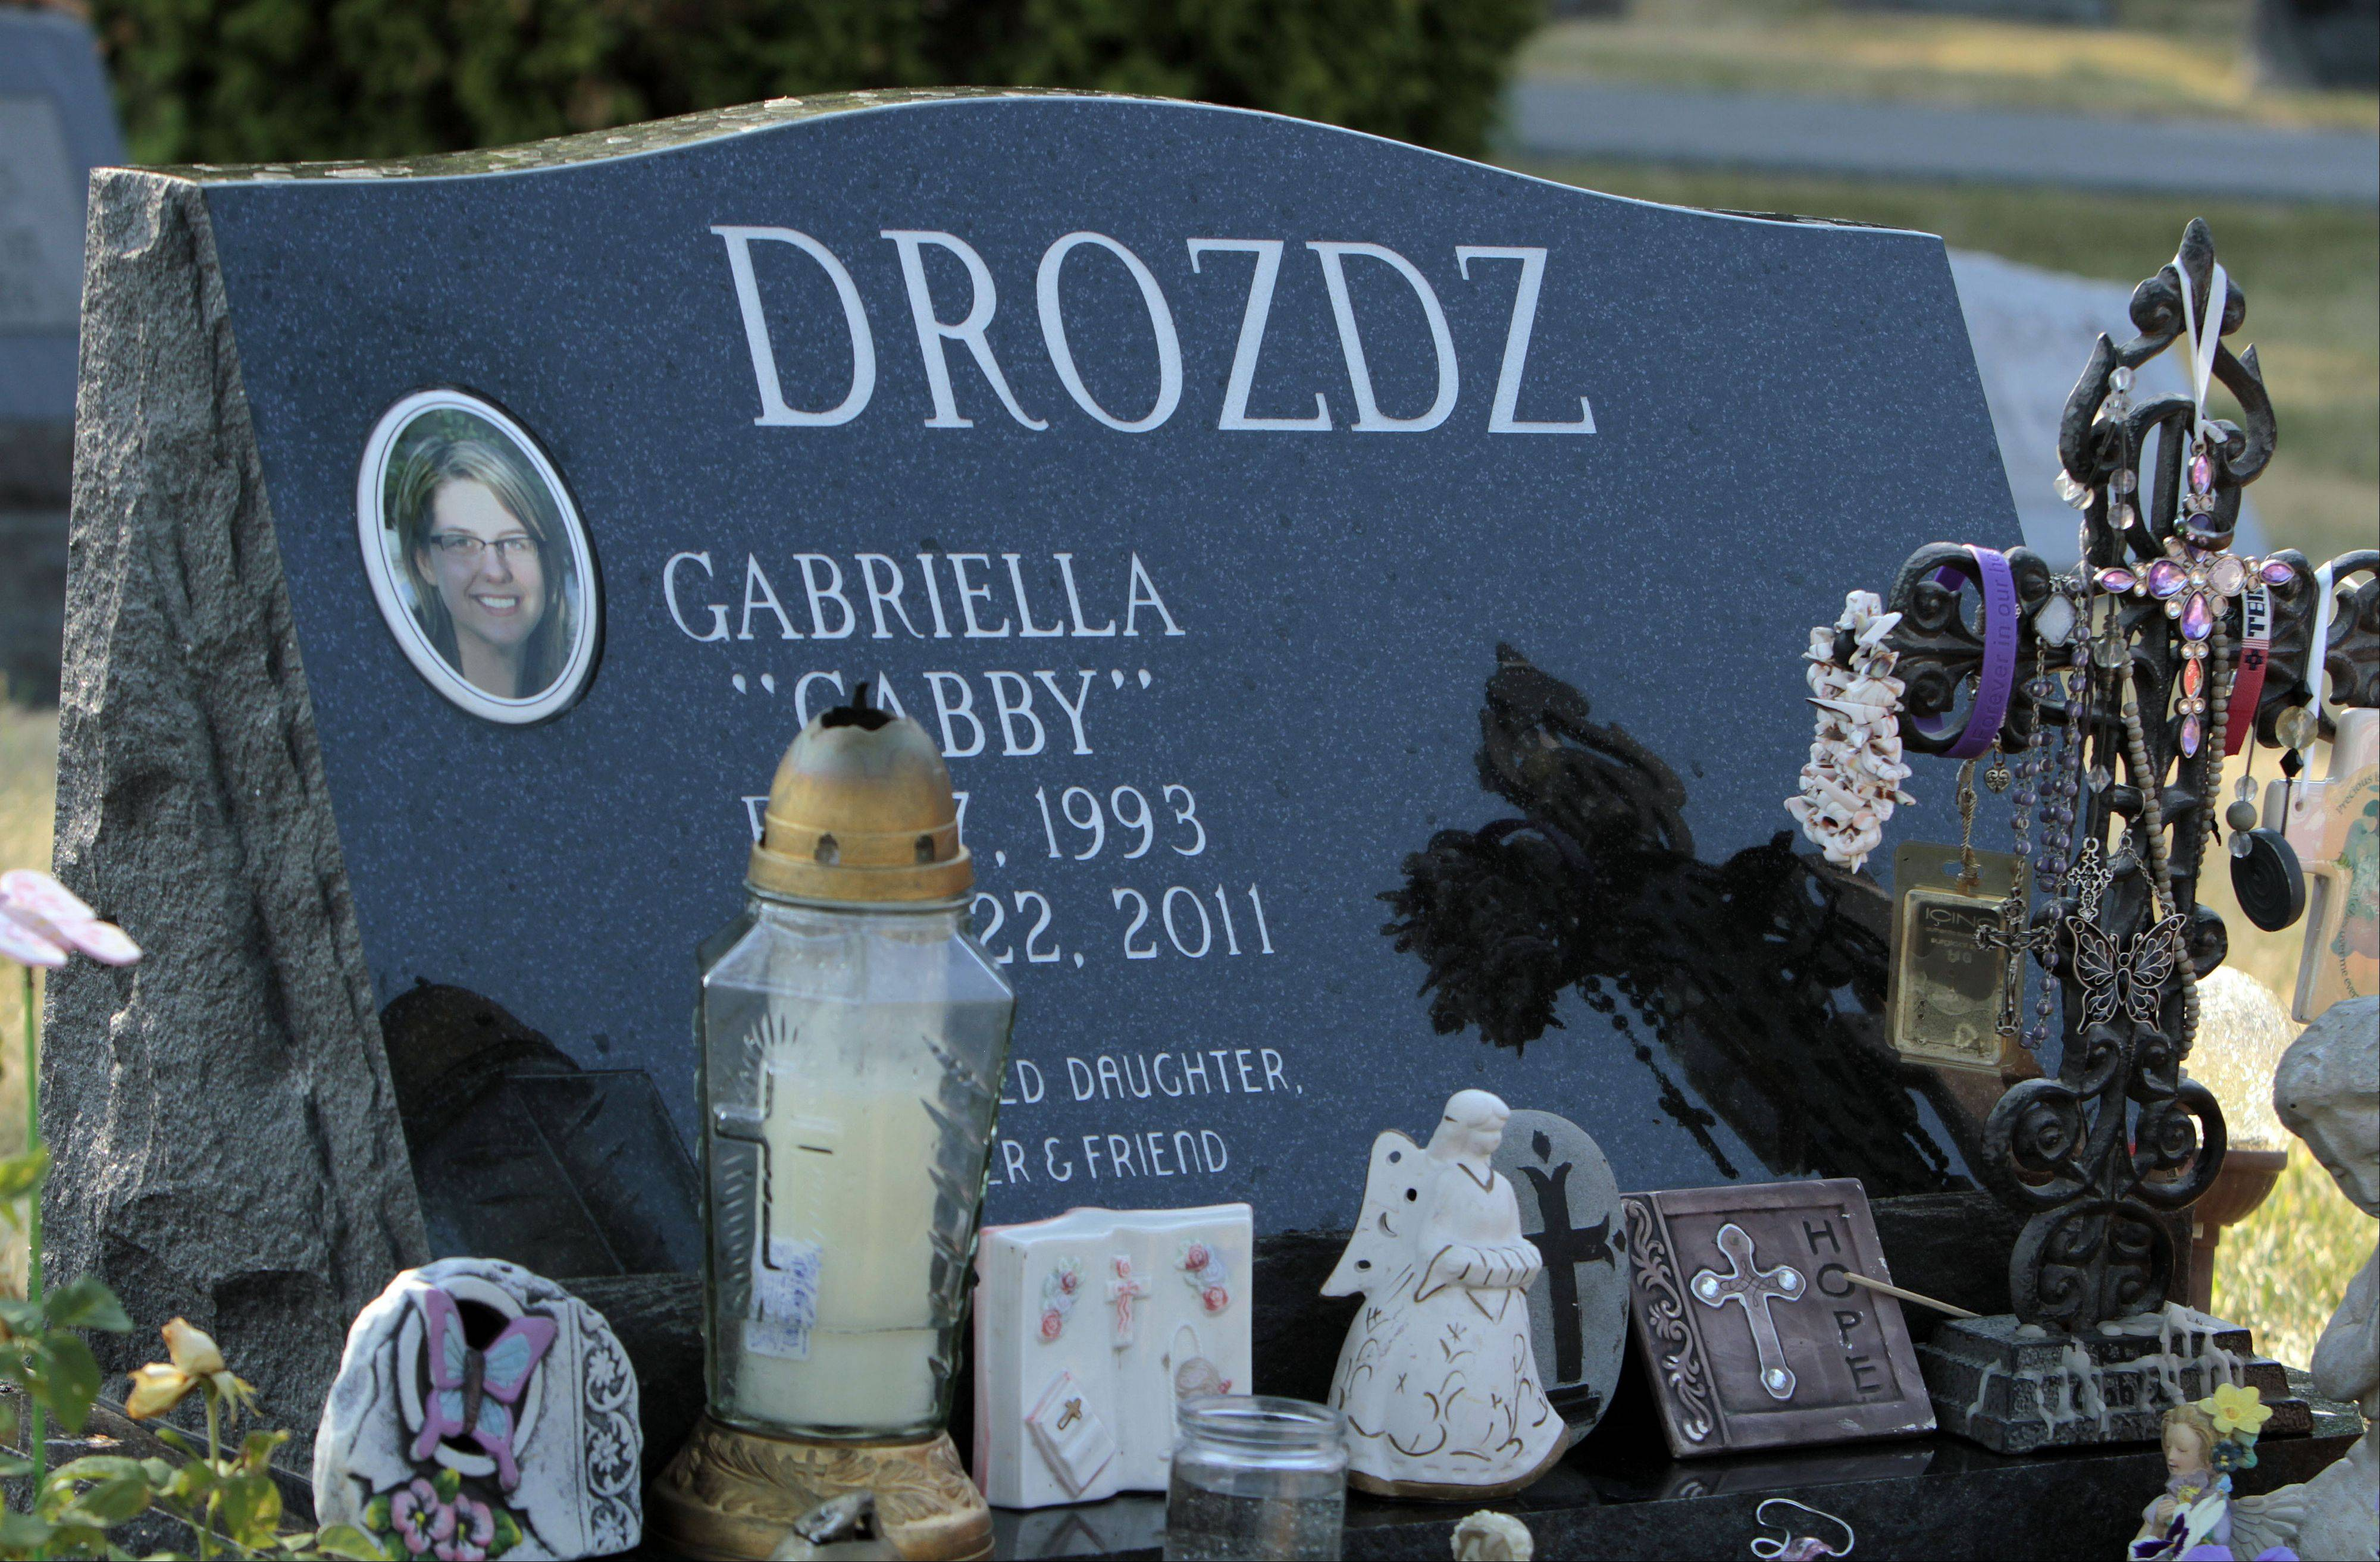 Gabriella Drozdz's grave in Lake Zurich is decorated with trinkets left by friends and family. Gabriella died a year ago when she and two friends were struck by a hit-and-run driver struck while walking along Church Street in Lake Zurich.